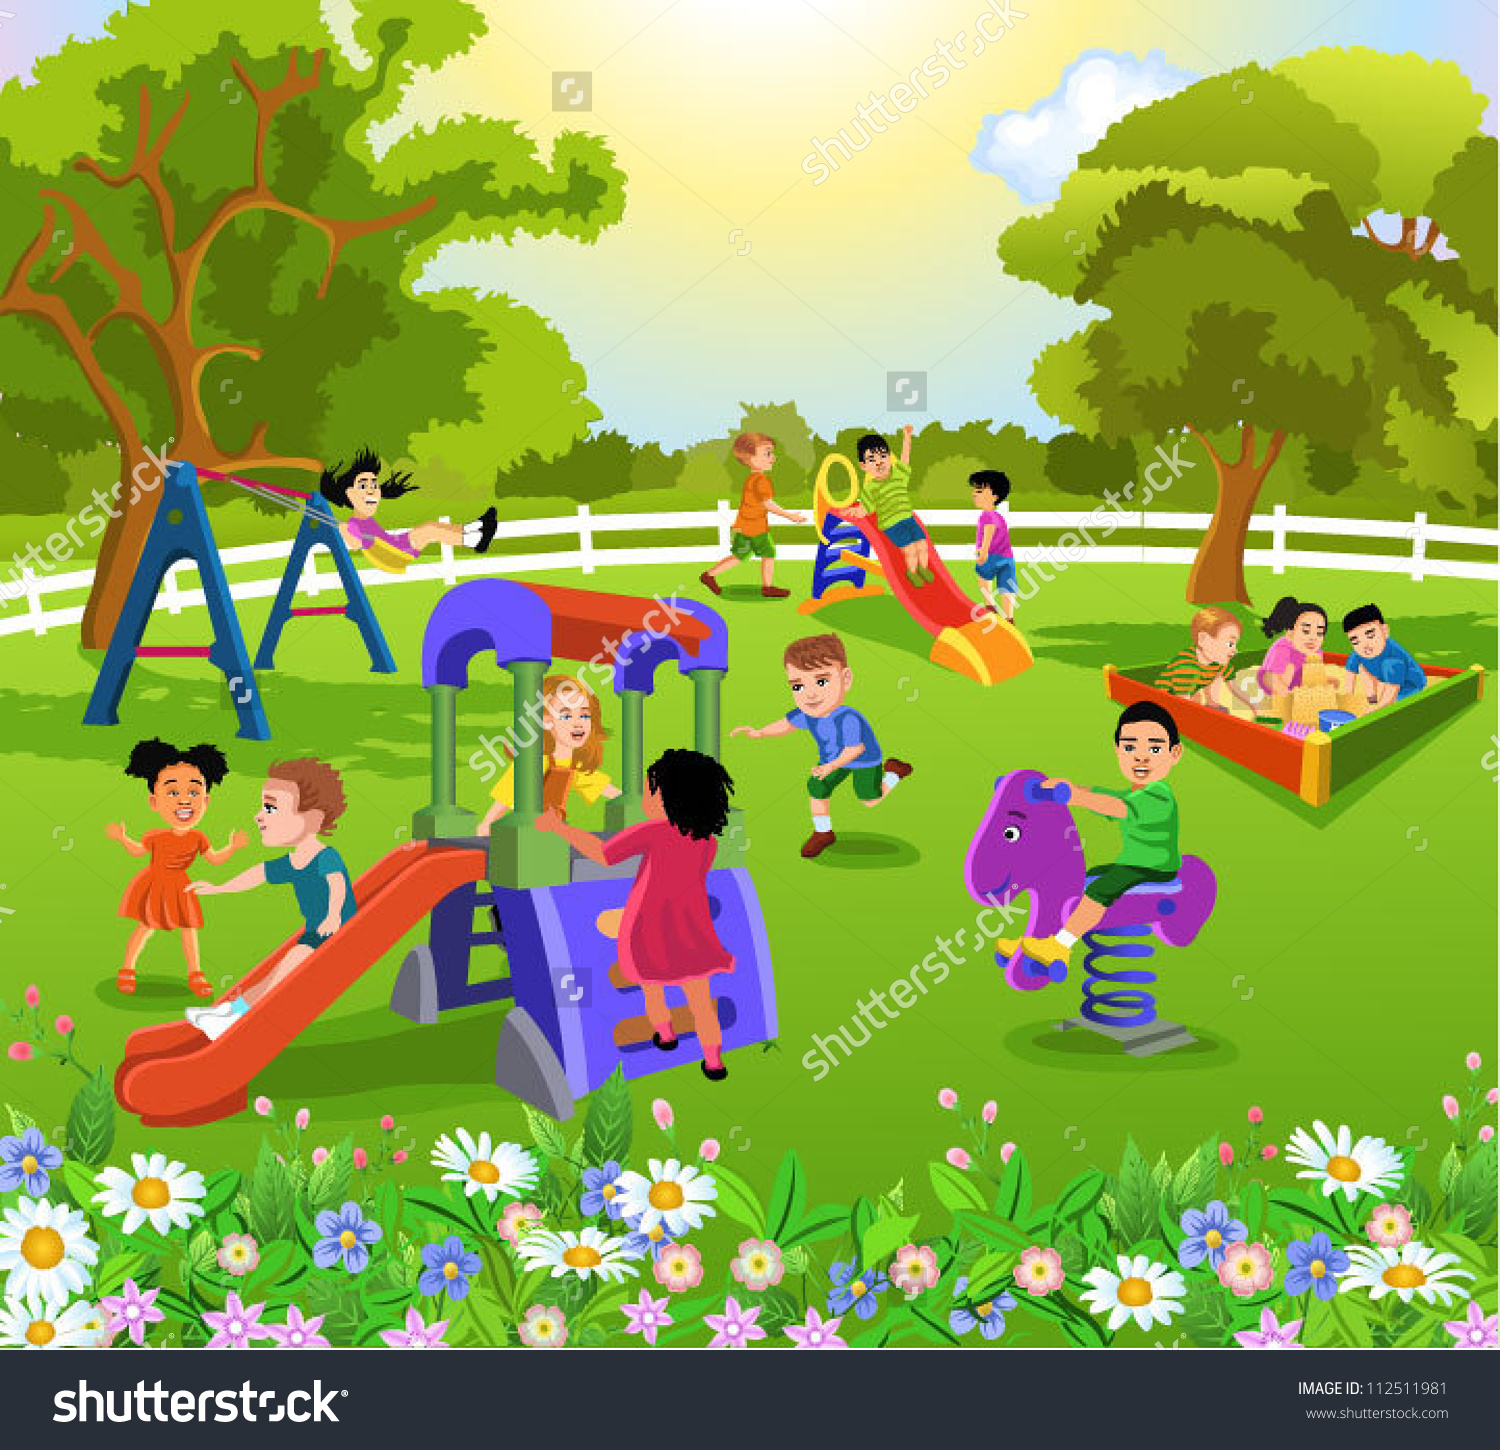 Kids at the park clipart vector free stock Children park clipart 7 » Clipart Station vector free stock